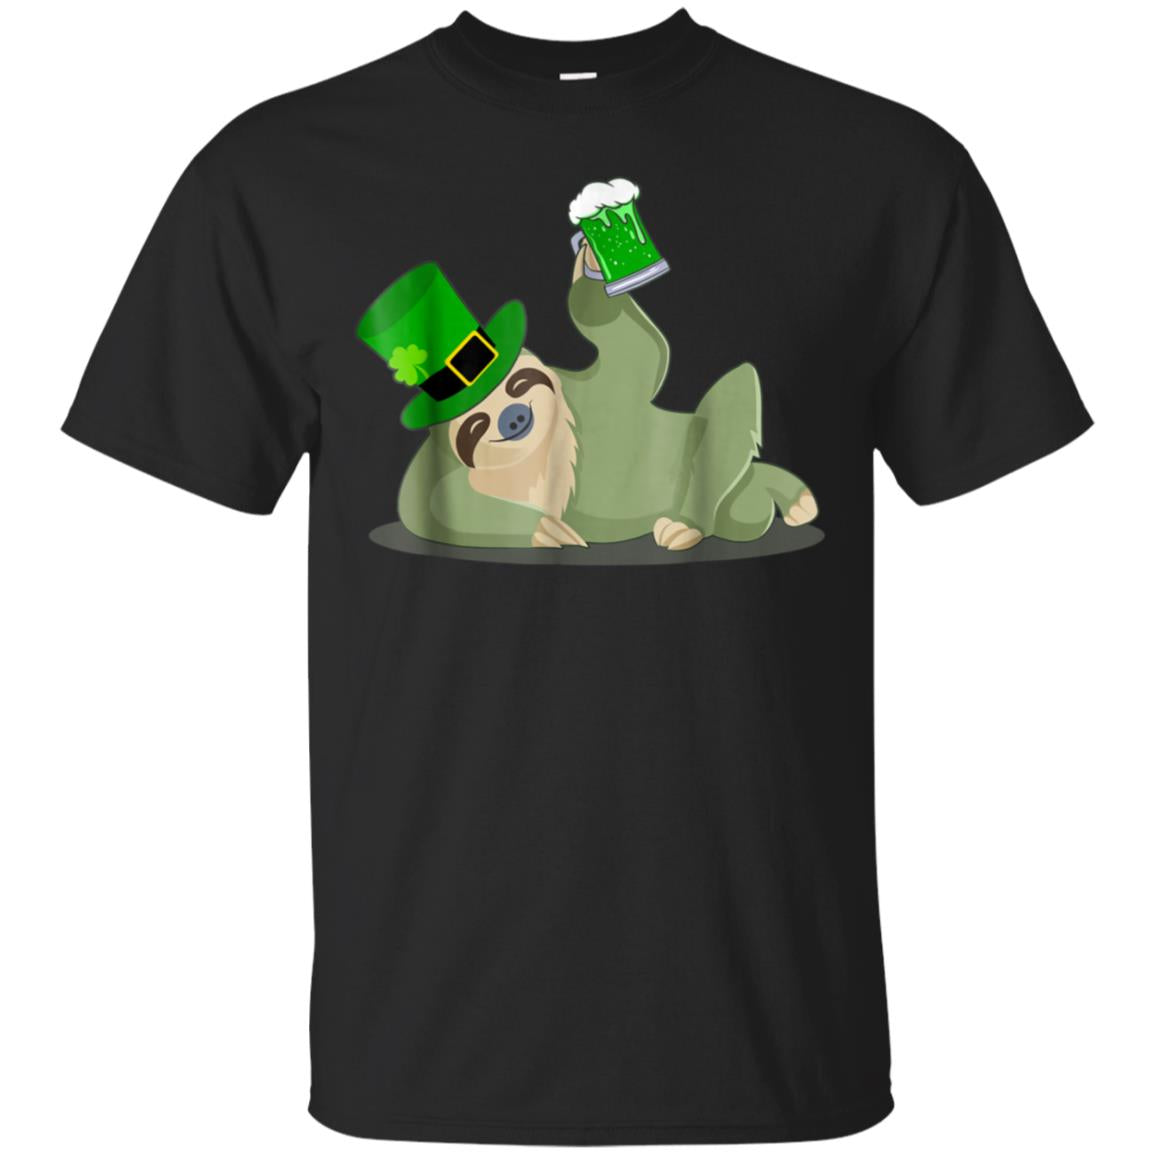 Sloth Green Beer Drinking St Patrick's Day T-Shirt 99promocode